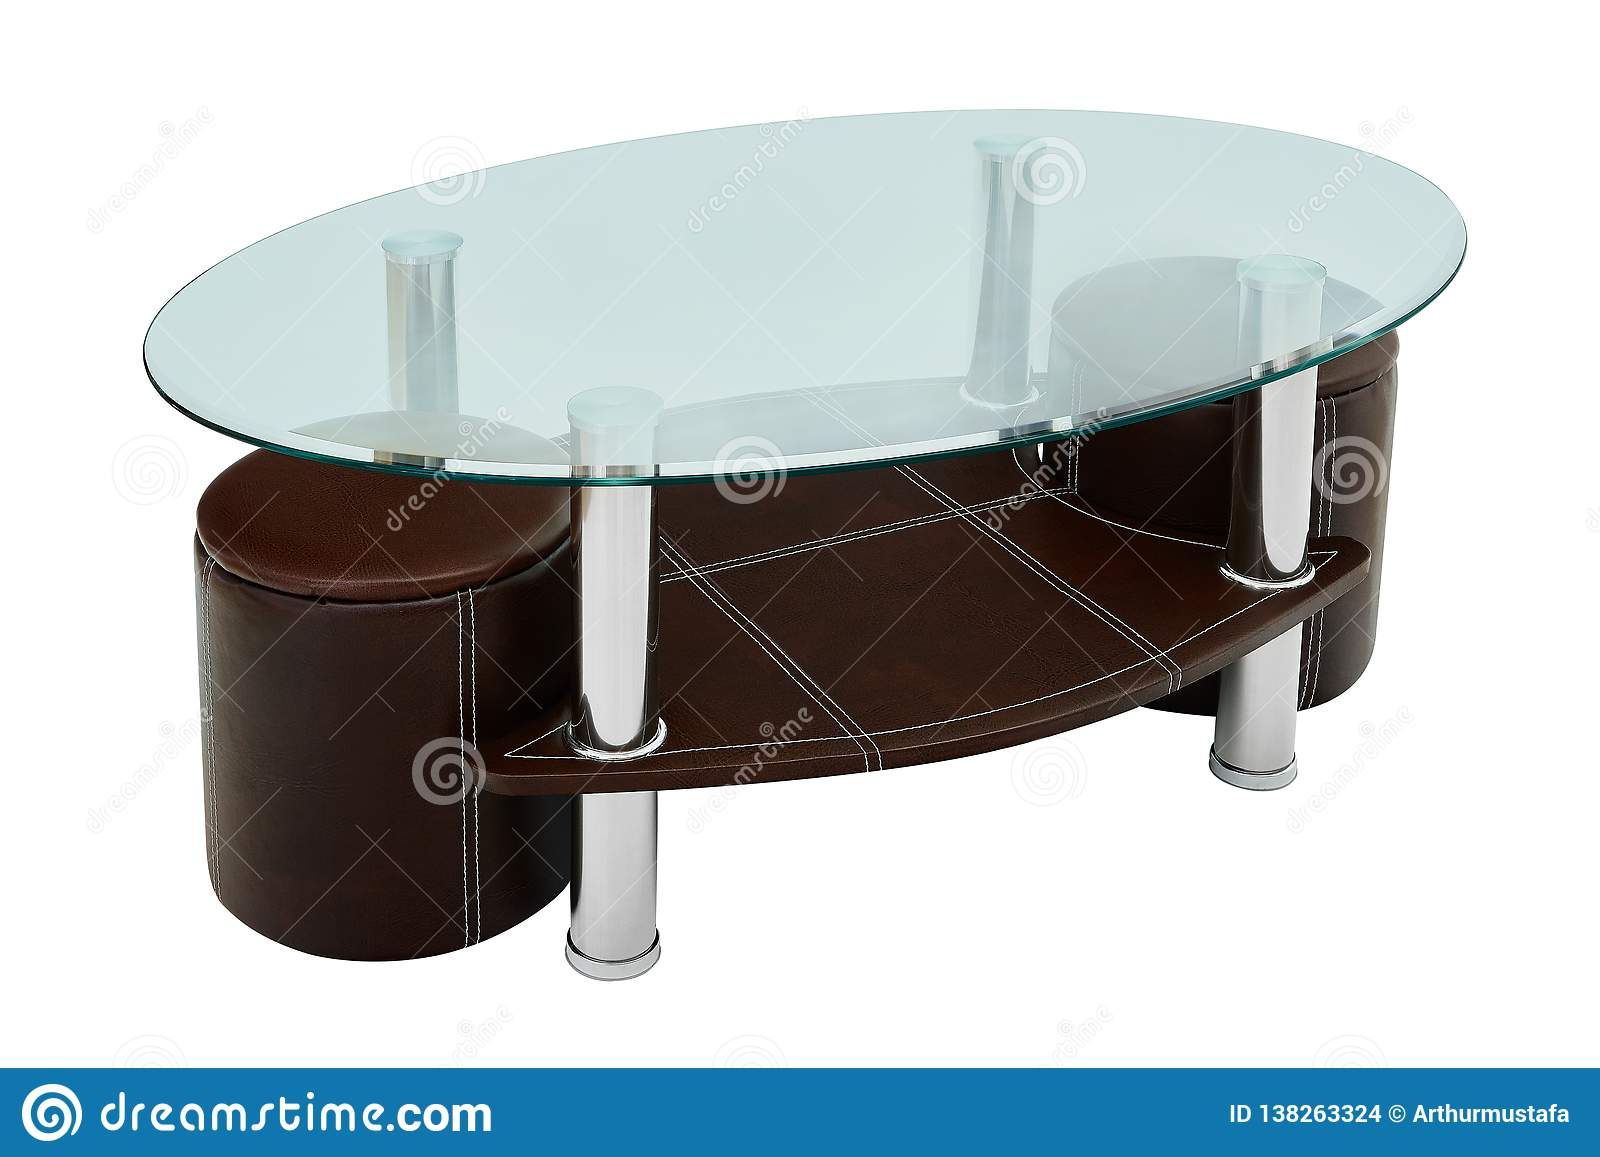 Luxury Coffee Table And Stools Round Glass And Brown Leather Coffe Table With Two Stools Isolated On White Background Clipping Stock Photo Image Of Chair Assemble 138263324